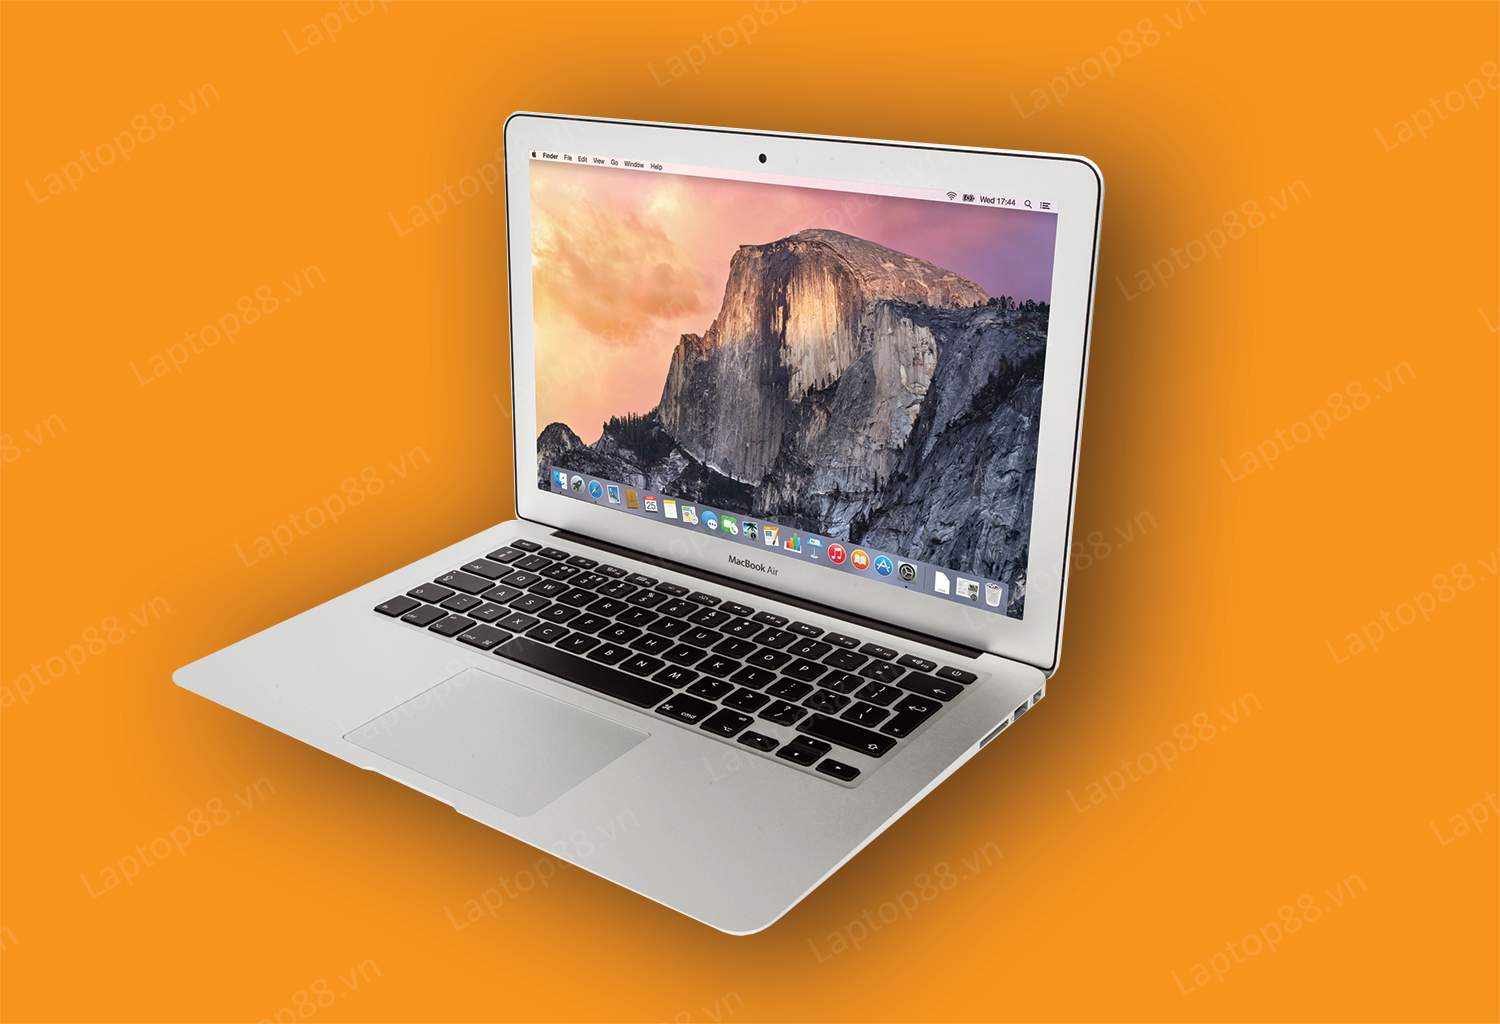 Macbook Air 13.3 2015 - MJVE2 (Intel Core i5, RAM 4GB, SSD 128GB, Intel HD Graphics 6000, 13,3 inch)